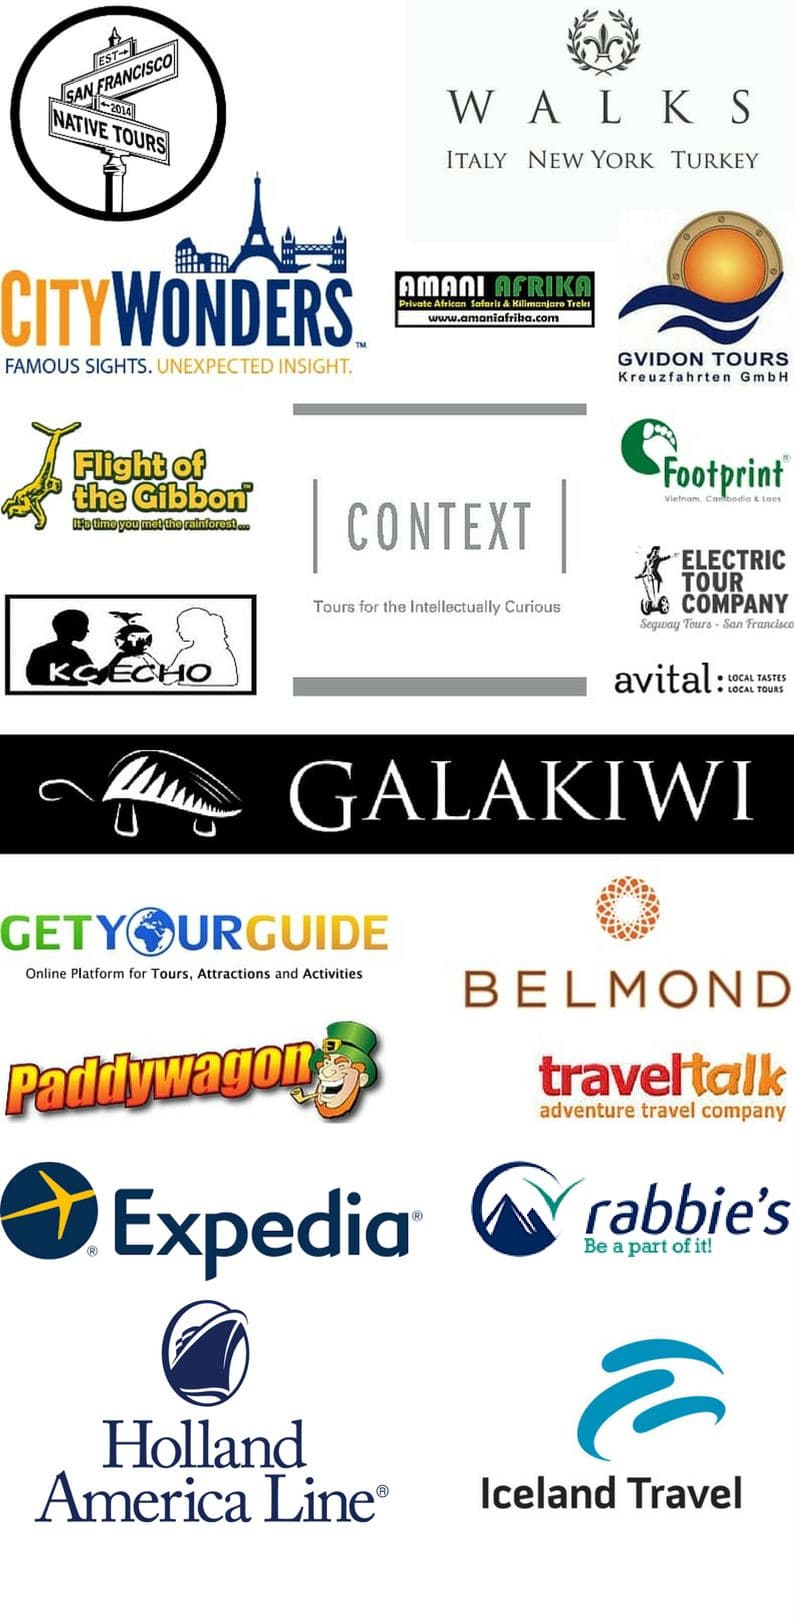 travel partners Independent Travel Cats travel bloggers partnerships